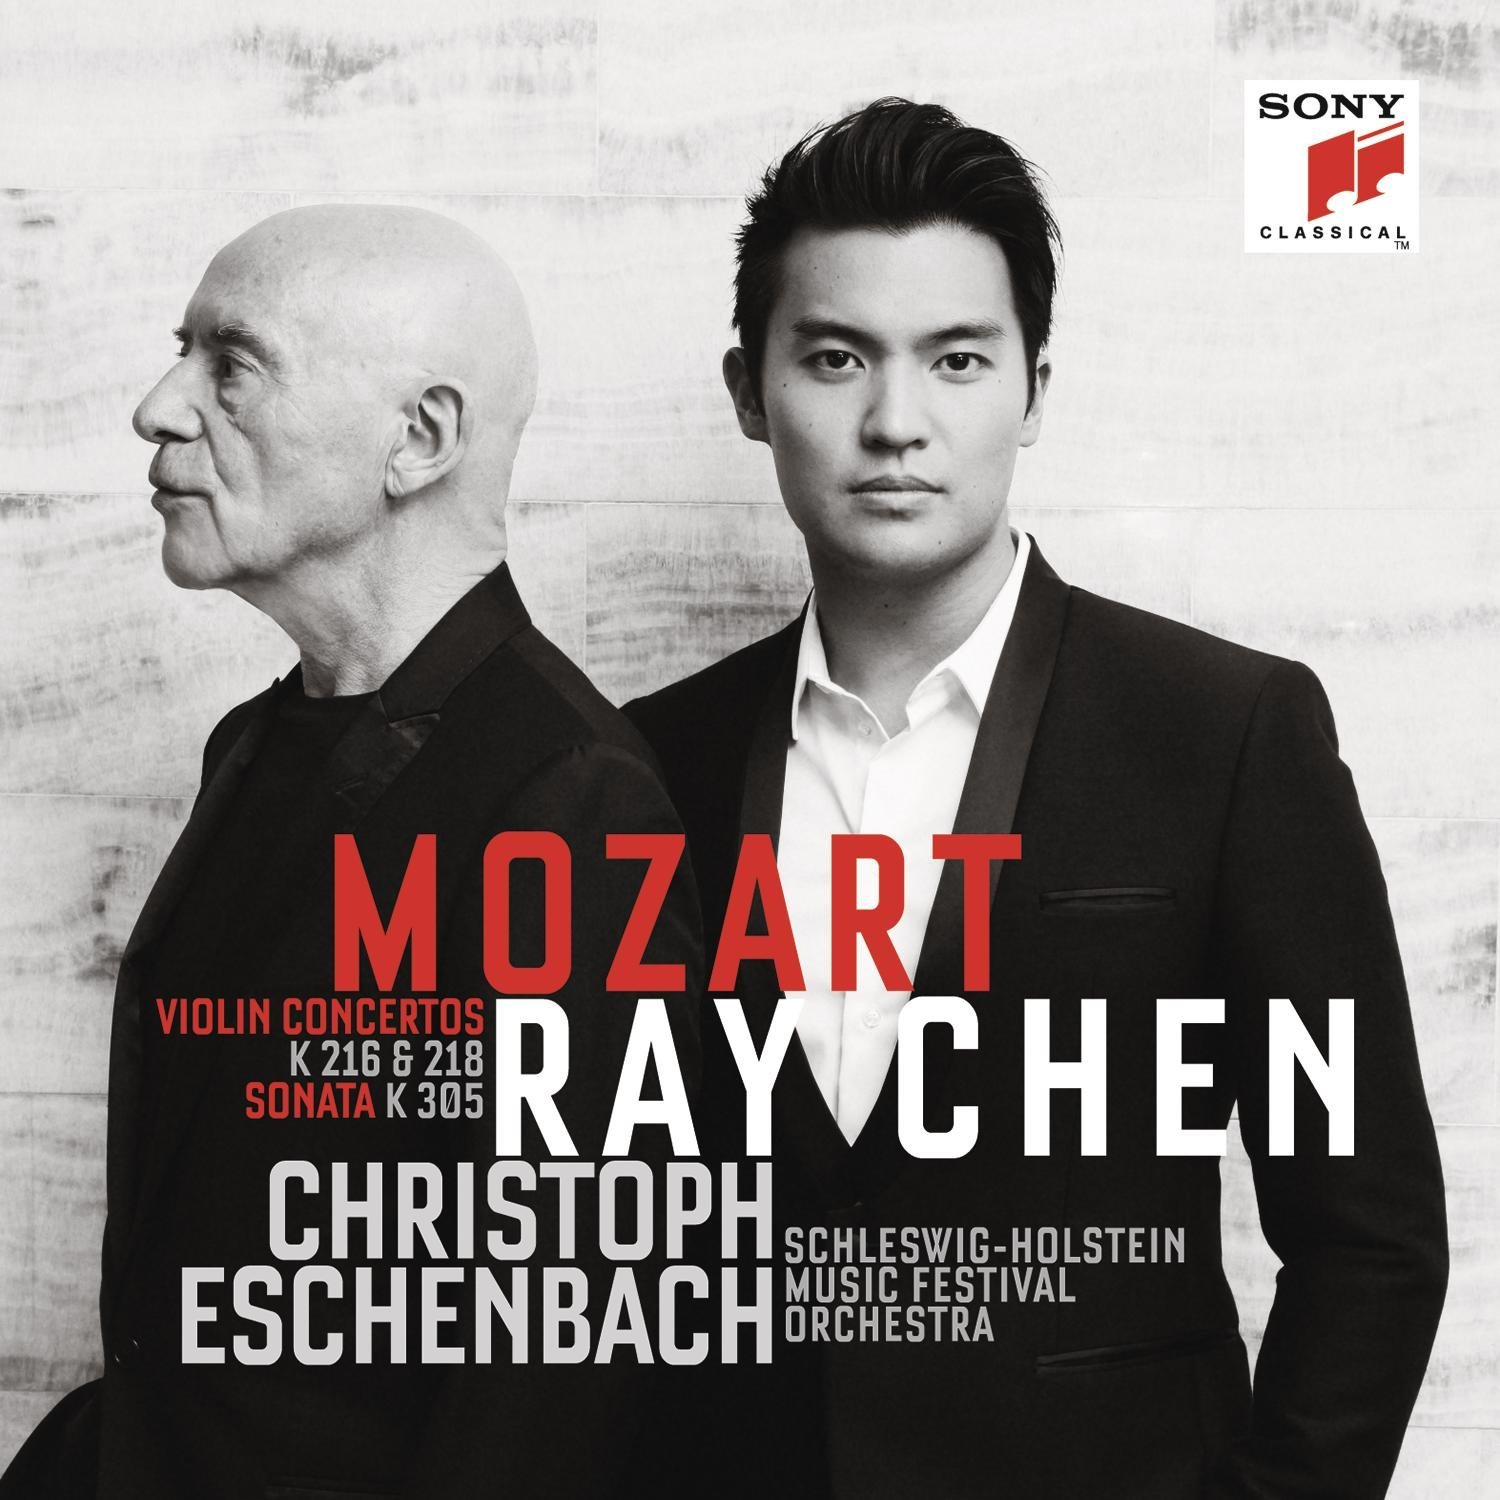 Ray Chen & Christoph Eschenbach: The Spirit of Mozart